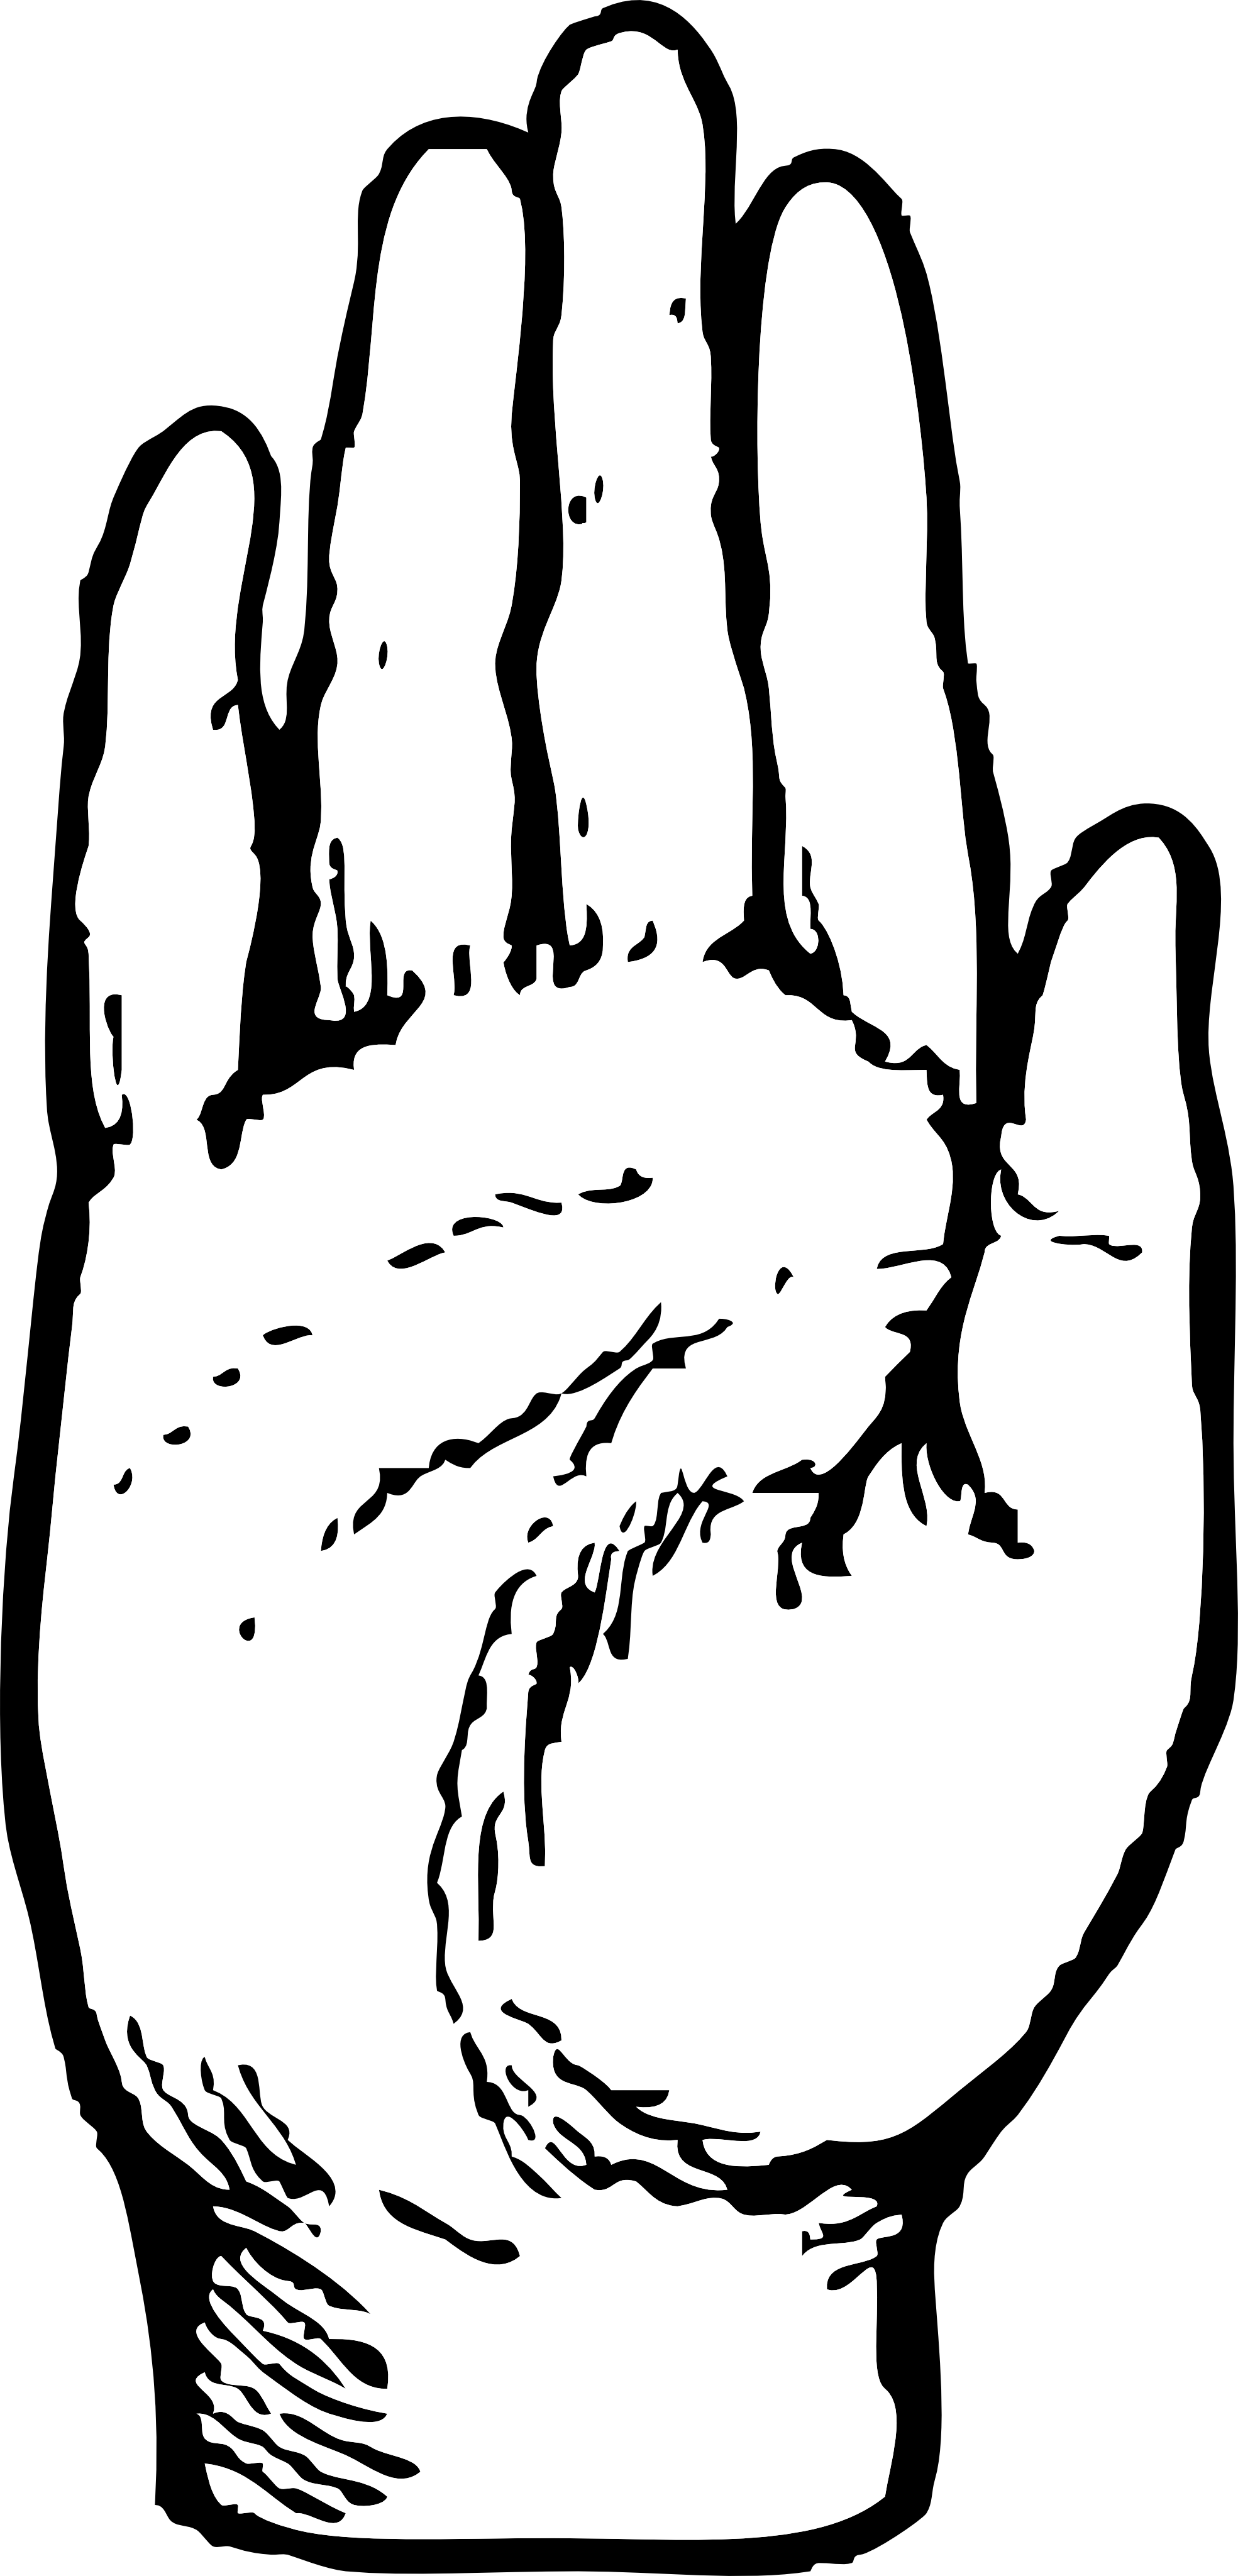 Hand Clipart Black And White Right Hand -Hand Clipart Black And White Right Hand Black White Line Art Coloring-11